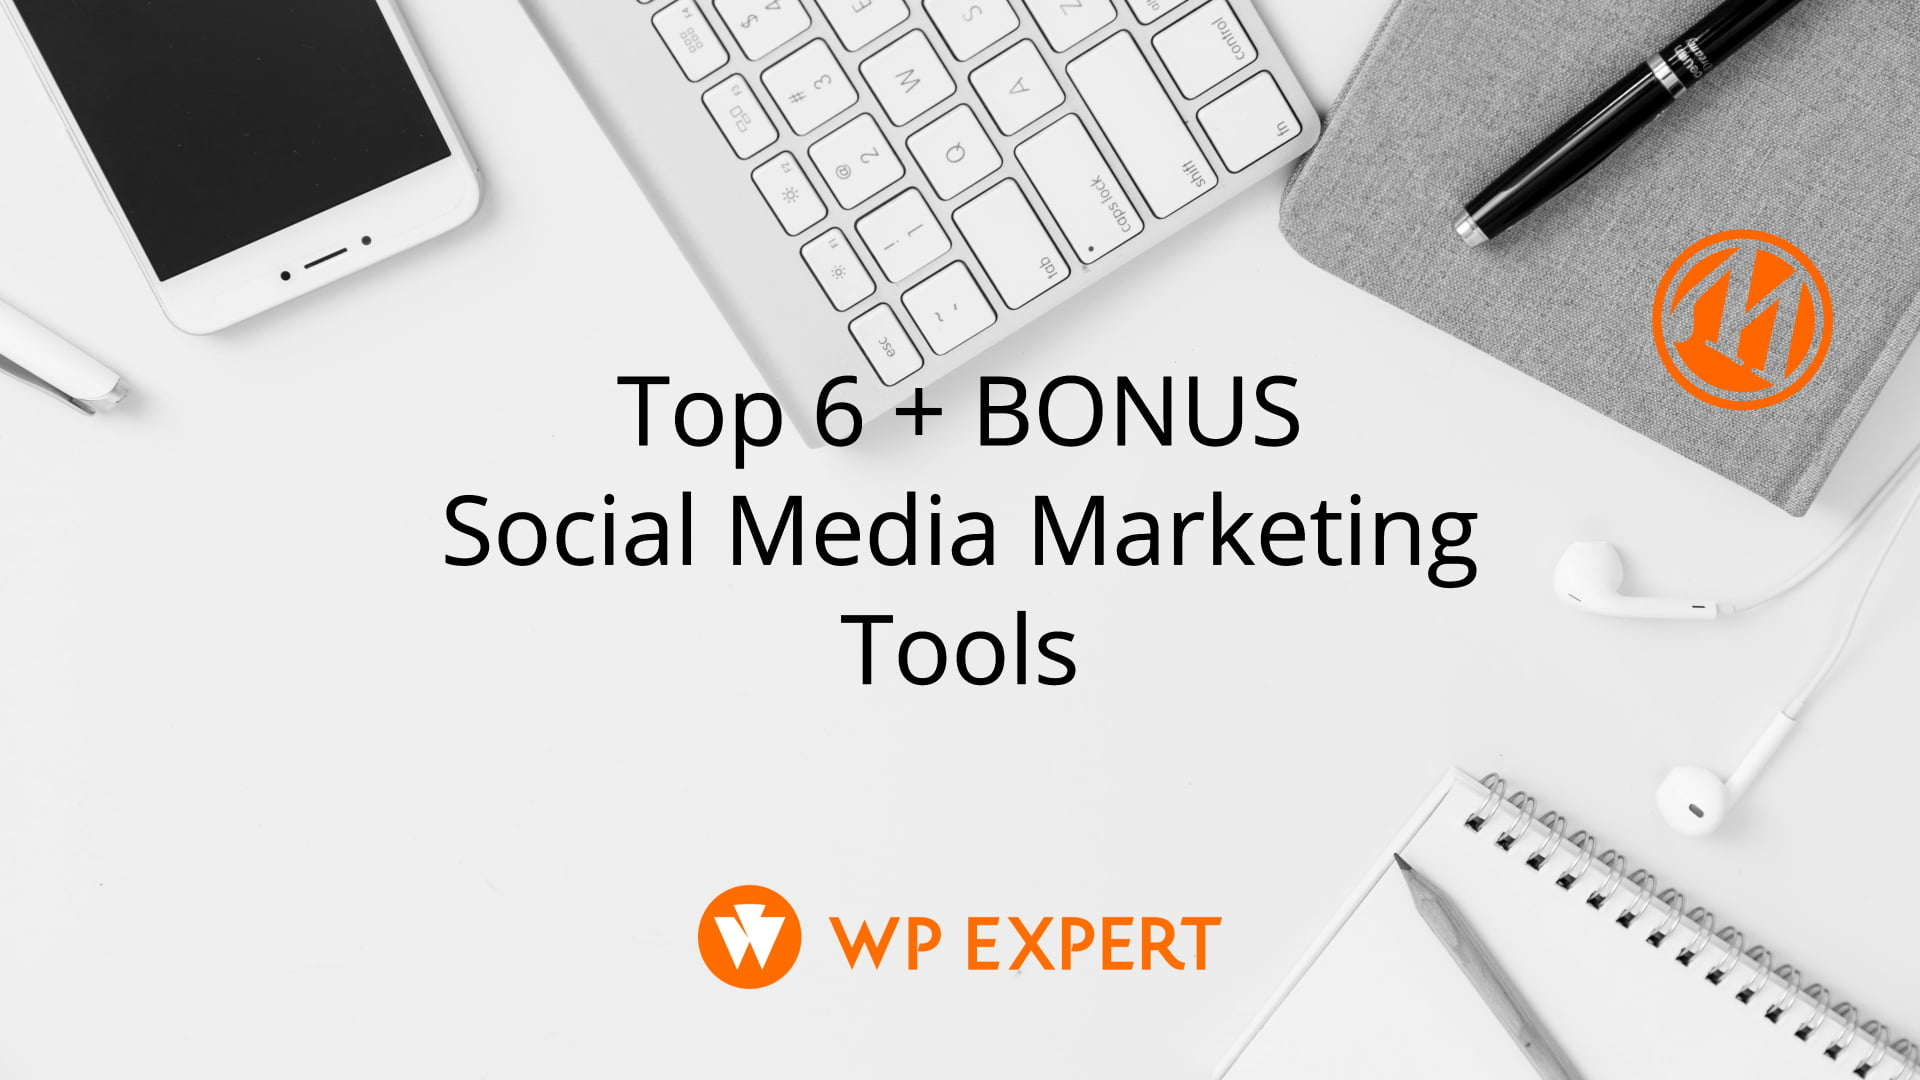 Top 6 plus bonus Social Media Marketing Tools